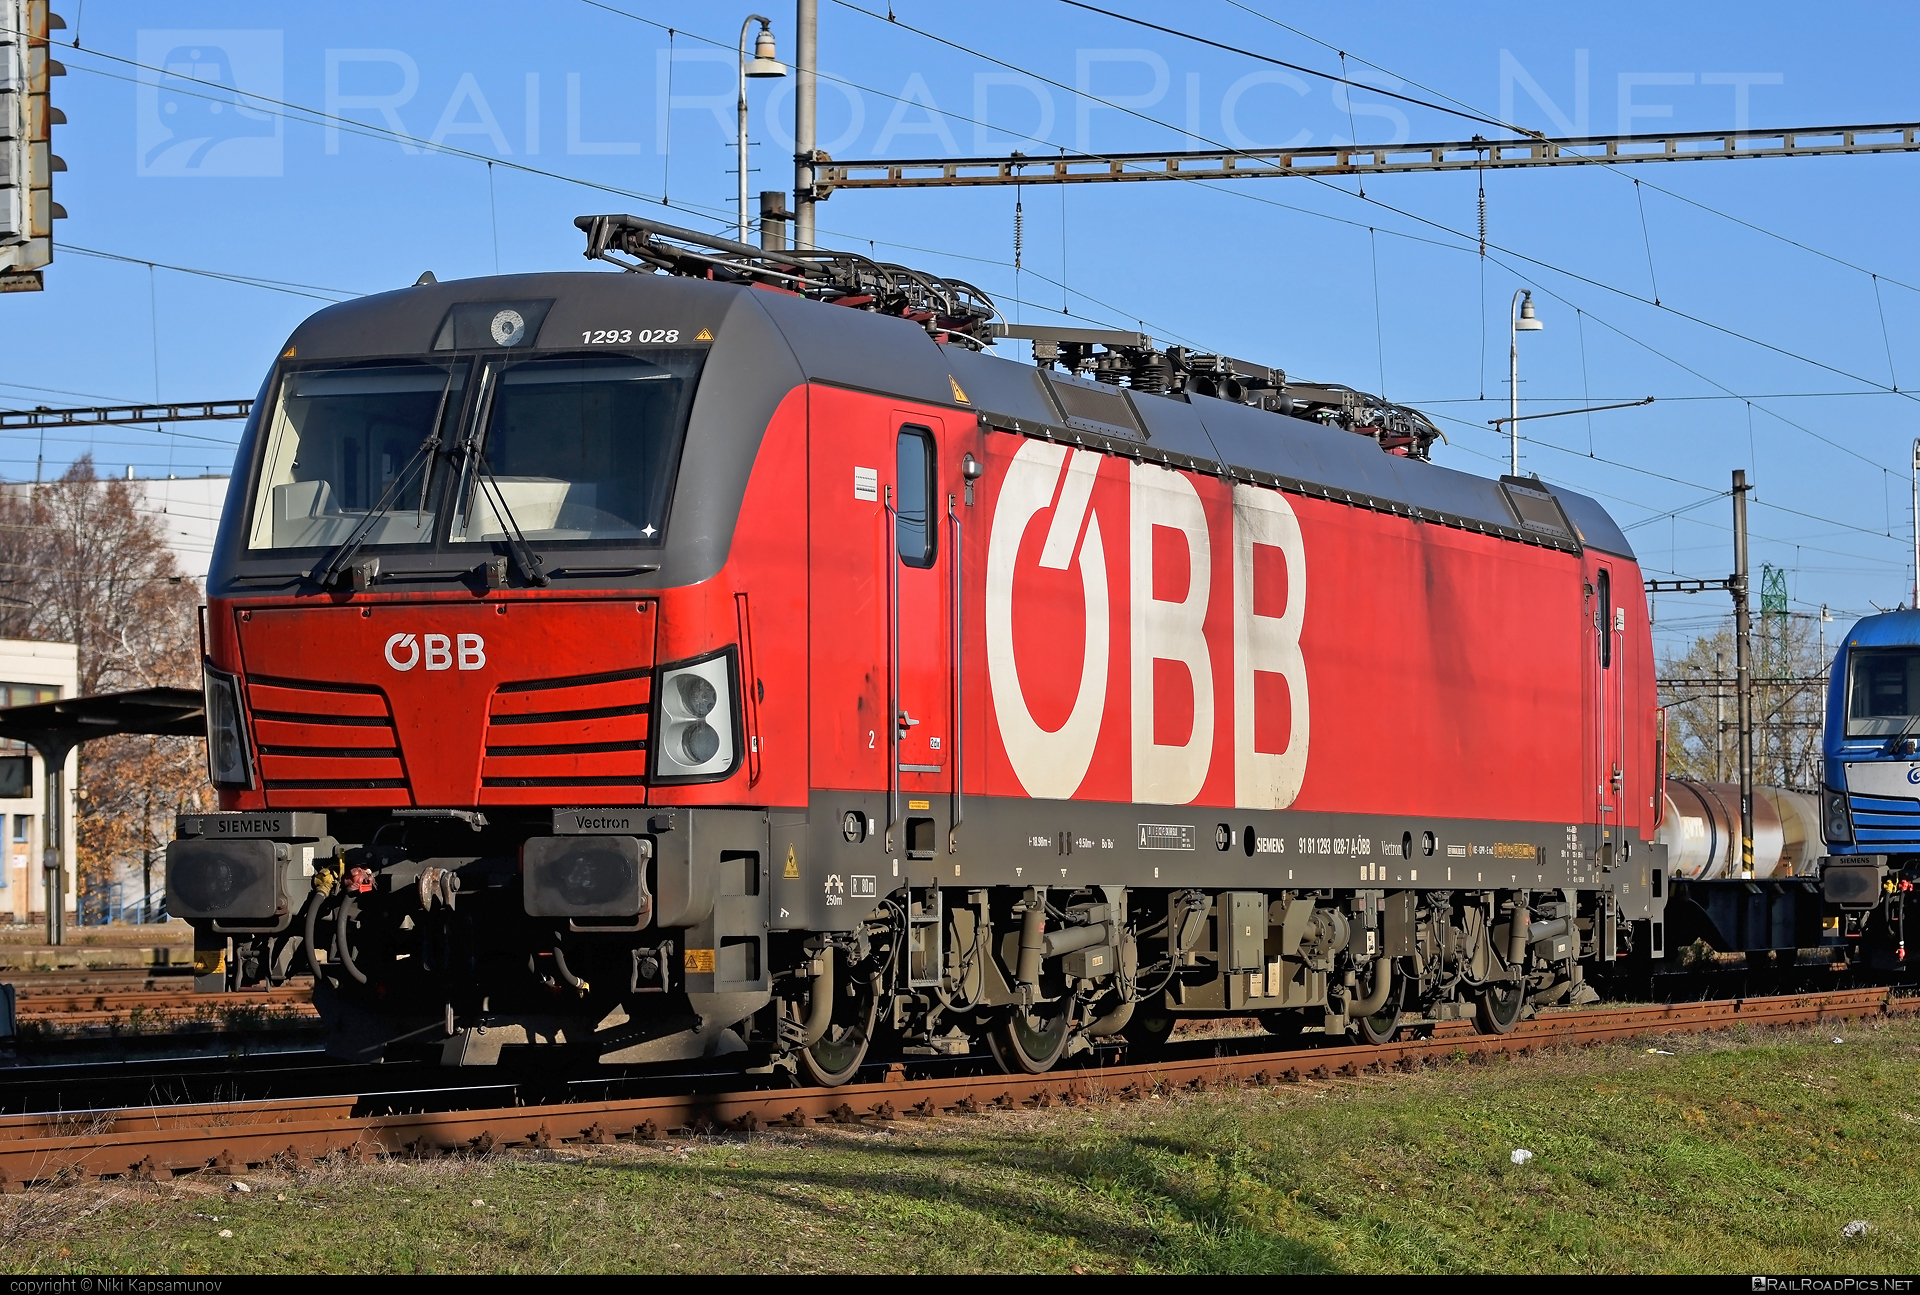 Siemens Vectron MS - 1293 028 operated by Rail Cargo Carrier – Slovakia s.r.o. #obb #osterreichischebundesbahnen #rccsk #rcw #siemens #siemensvectron #siemensvectronms #vectron #vectronms #wssk